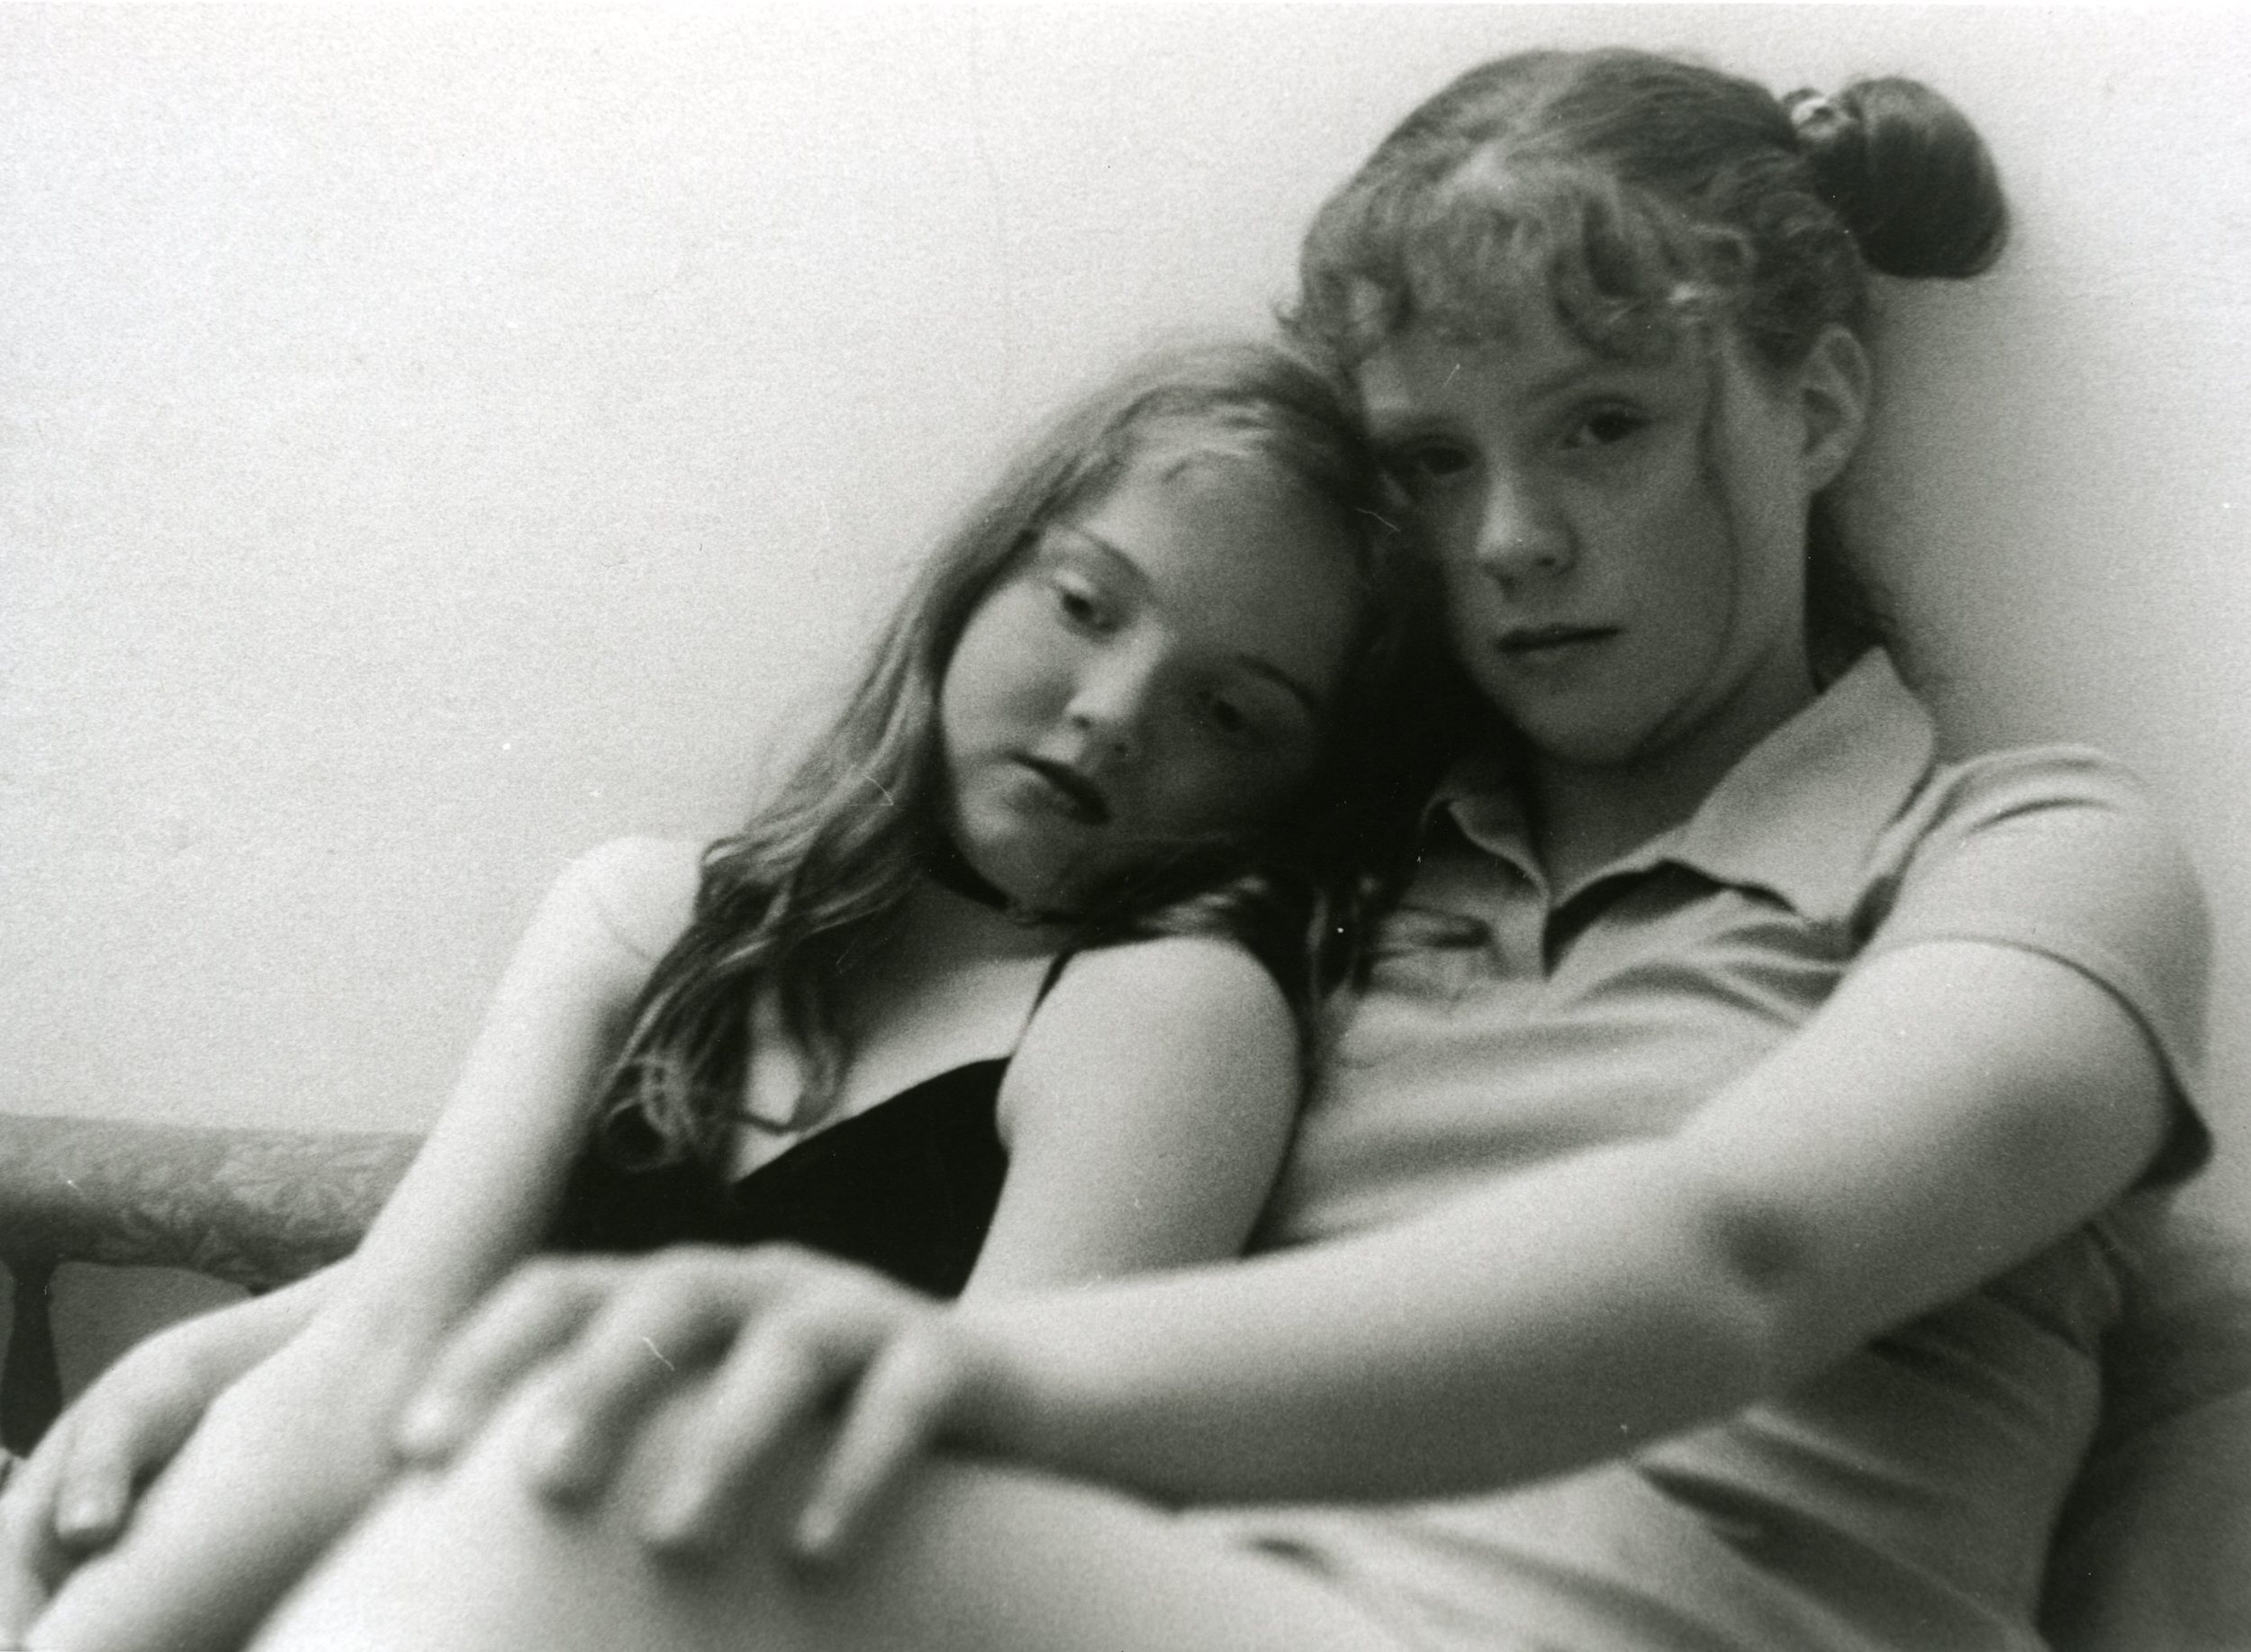 lily cole young by patience owen with eveline owen